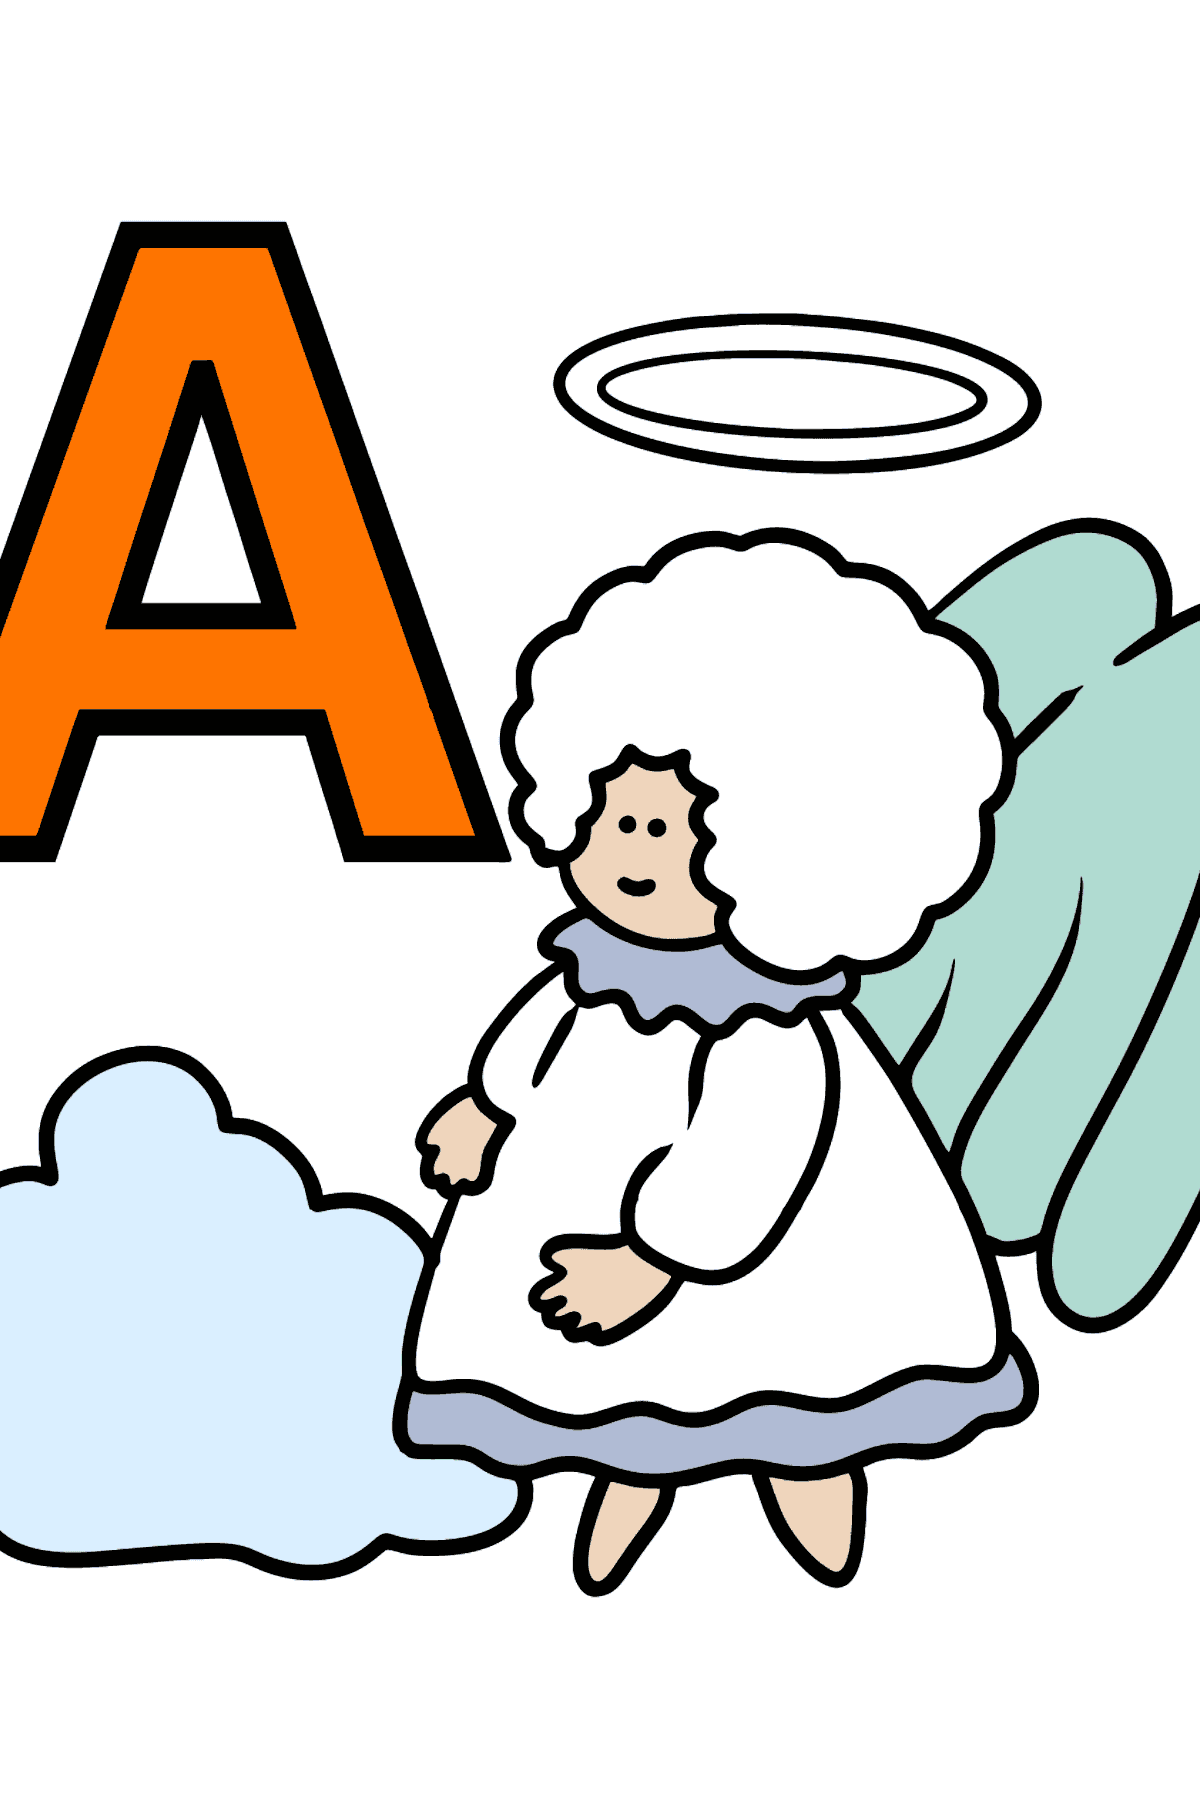 Spanish Letter A coloring pages - ÁNGEL - Coloring Pages for Kids